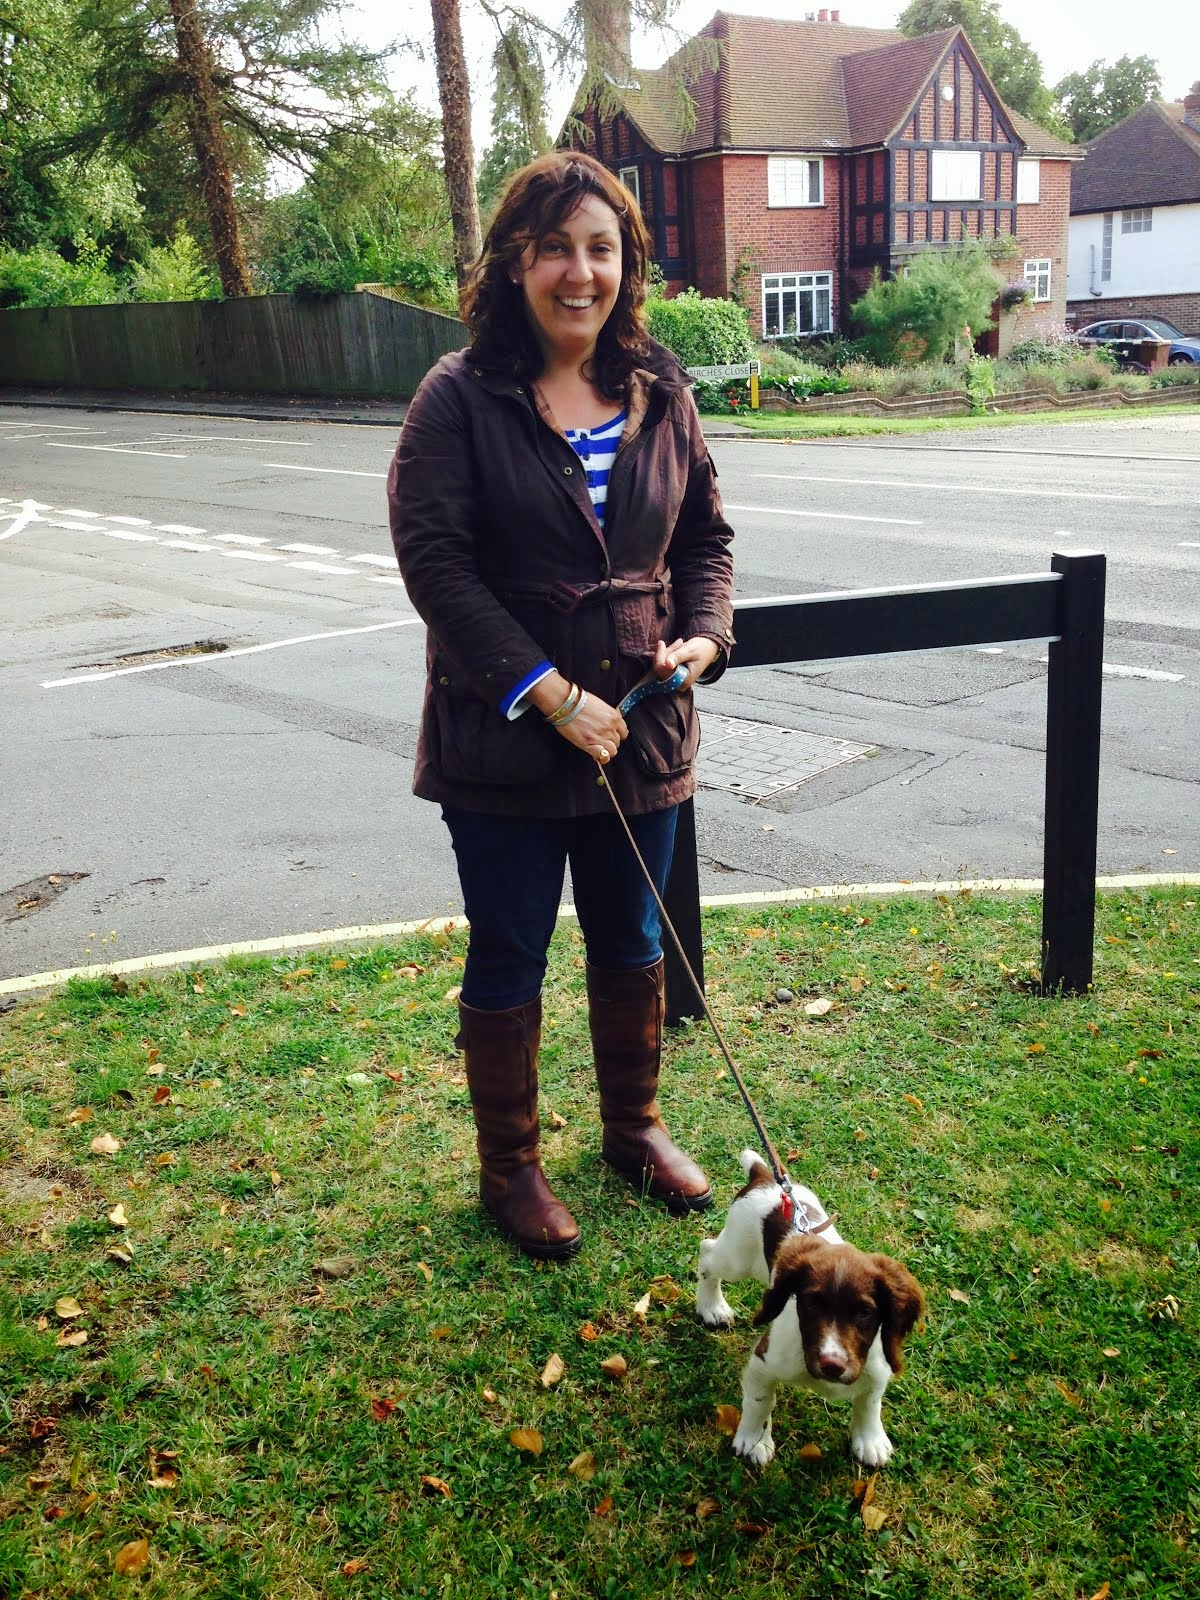 Jane Race, being taken for a walk in College Ward, by Billy, her English Springer Spaniel puppy!